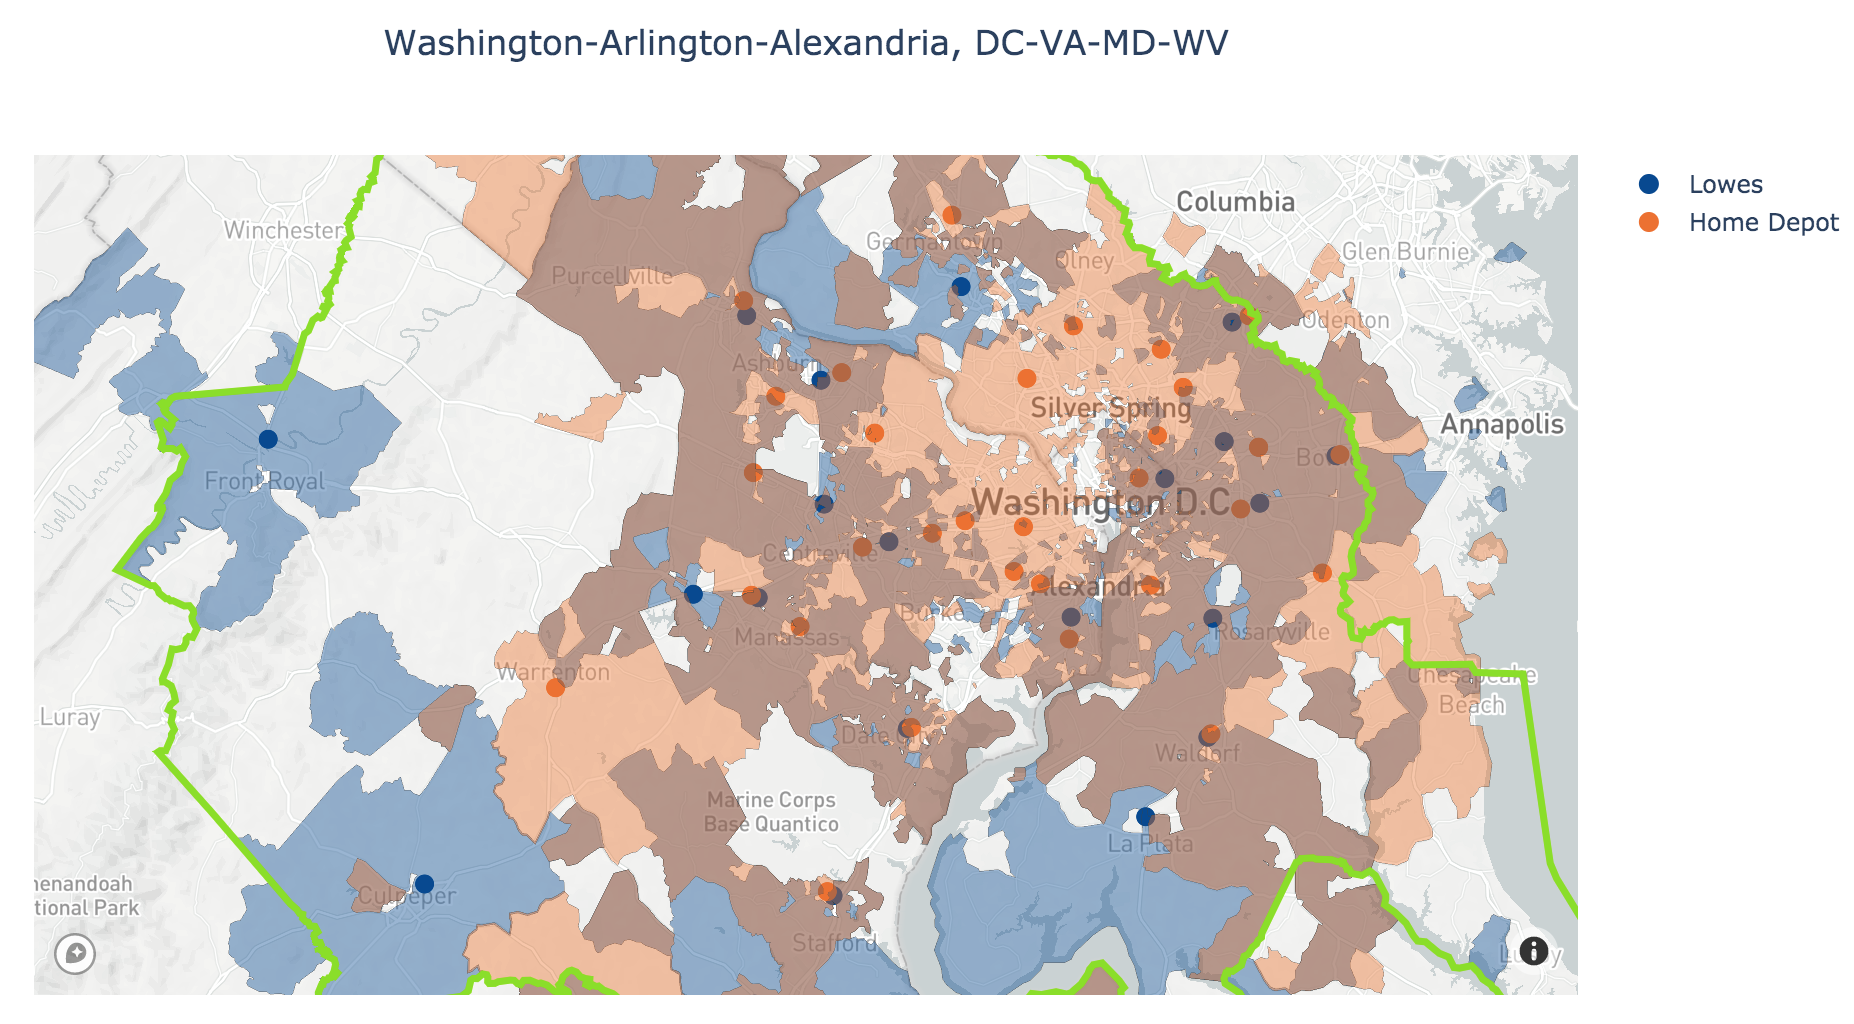 Home Depot and Lowes Trade Areas in Washington-Arlington-Alexandria